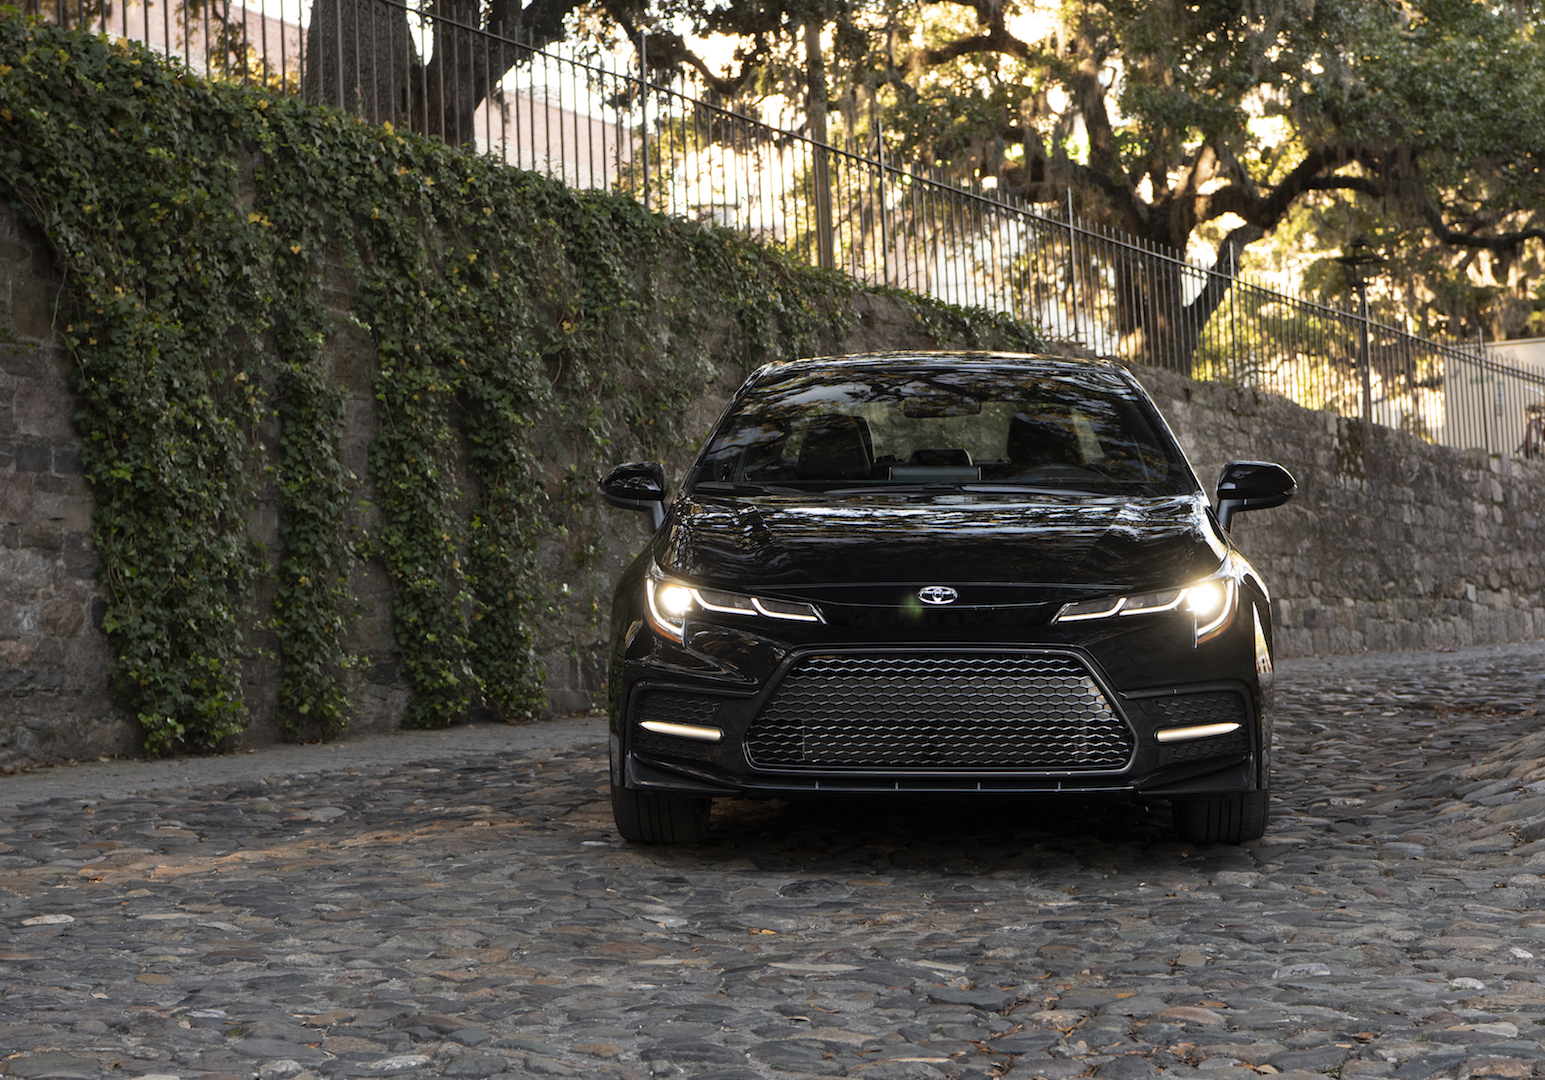 2020_Corolla_XSE_BlackSandPearl_009_v1_current